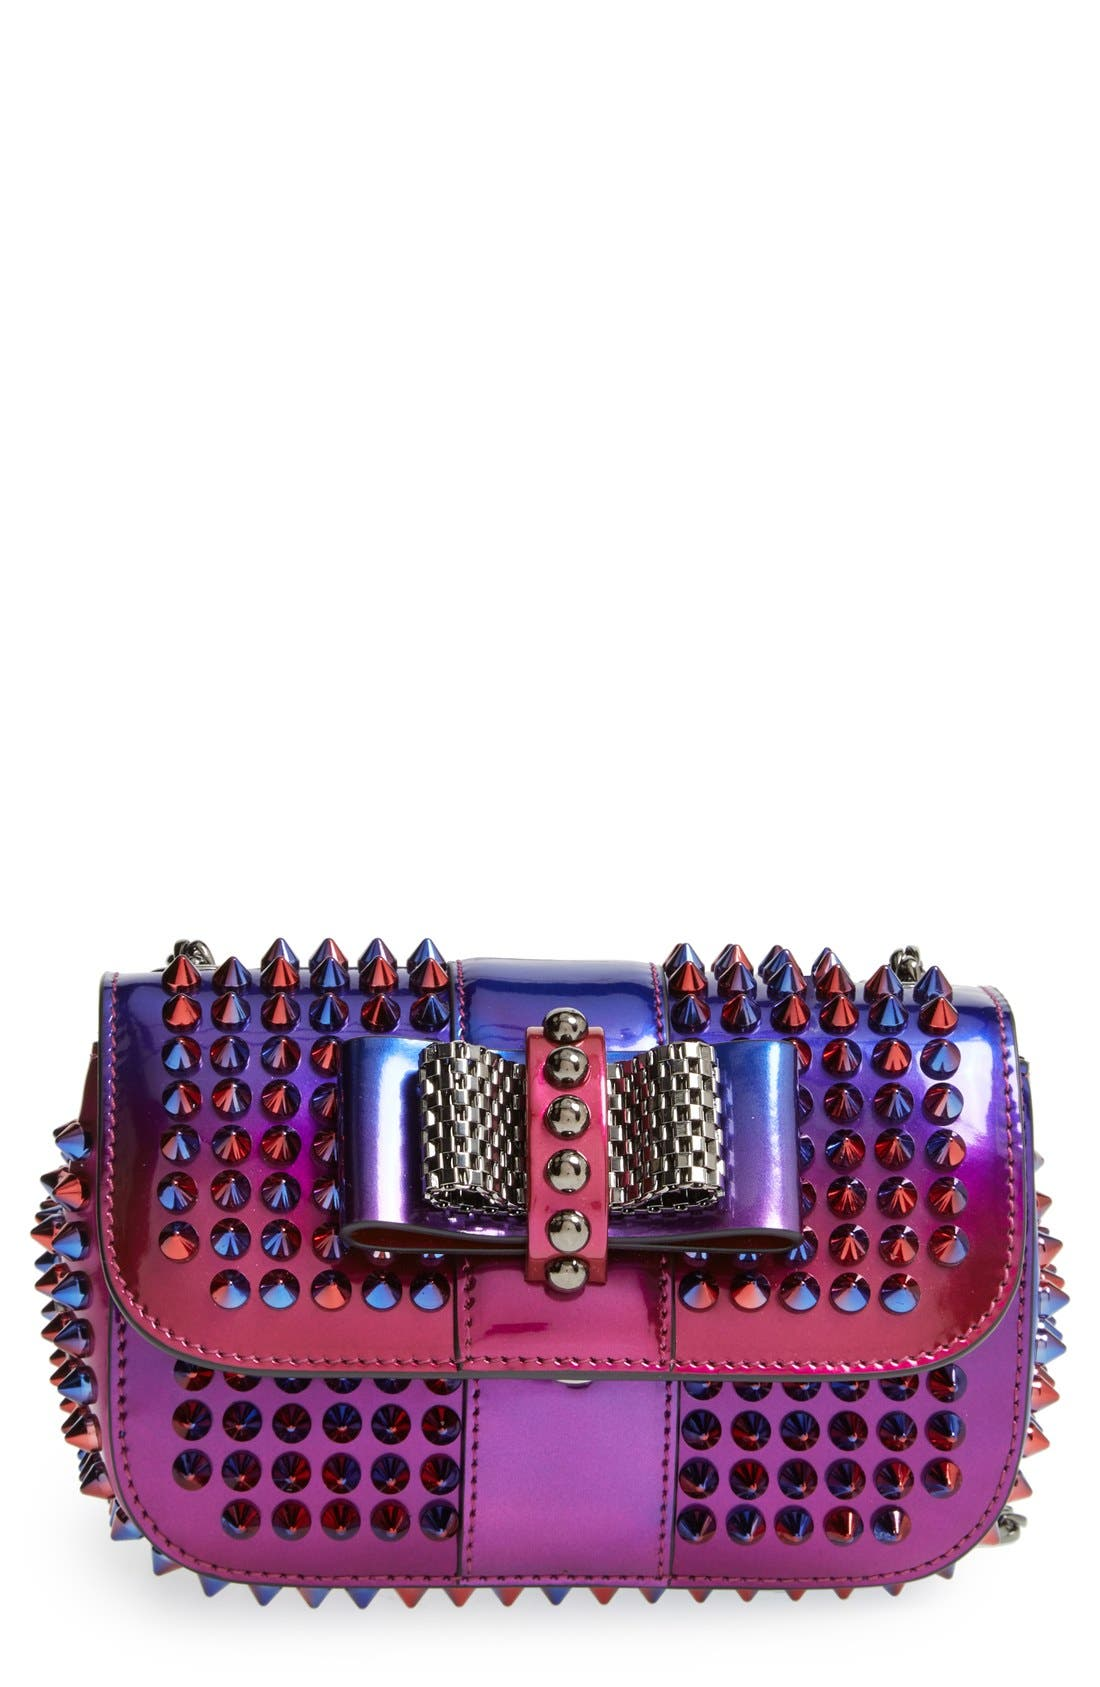 Main Image - Christian Louboutin 'Sweety Charity Scarab Spike' Patent Leather Clutch